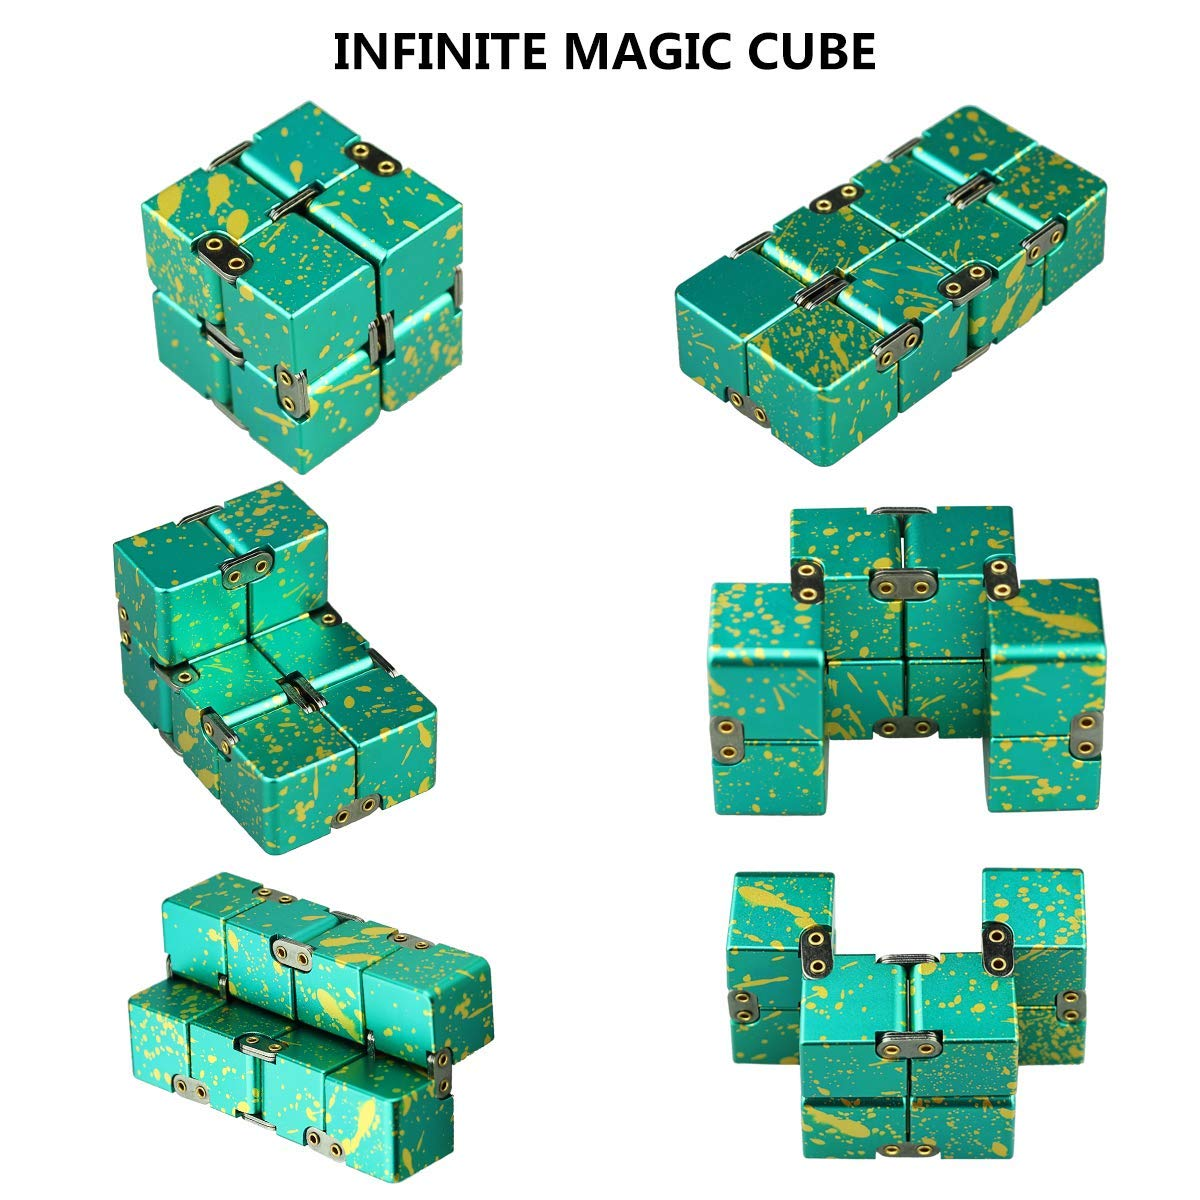 HELESIN Infinity Cube Fidget Toys Relaxation Office Stress Reducers for ADD, ADHD, Anxiety, Autism Adult & Kids, Aluminium Alloy, Camouflage by HELESIN (Image #4)